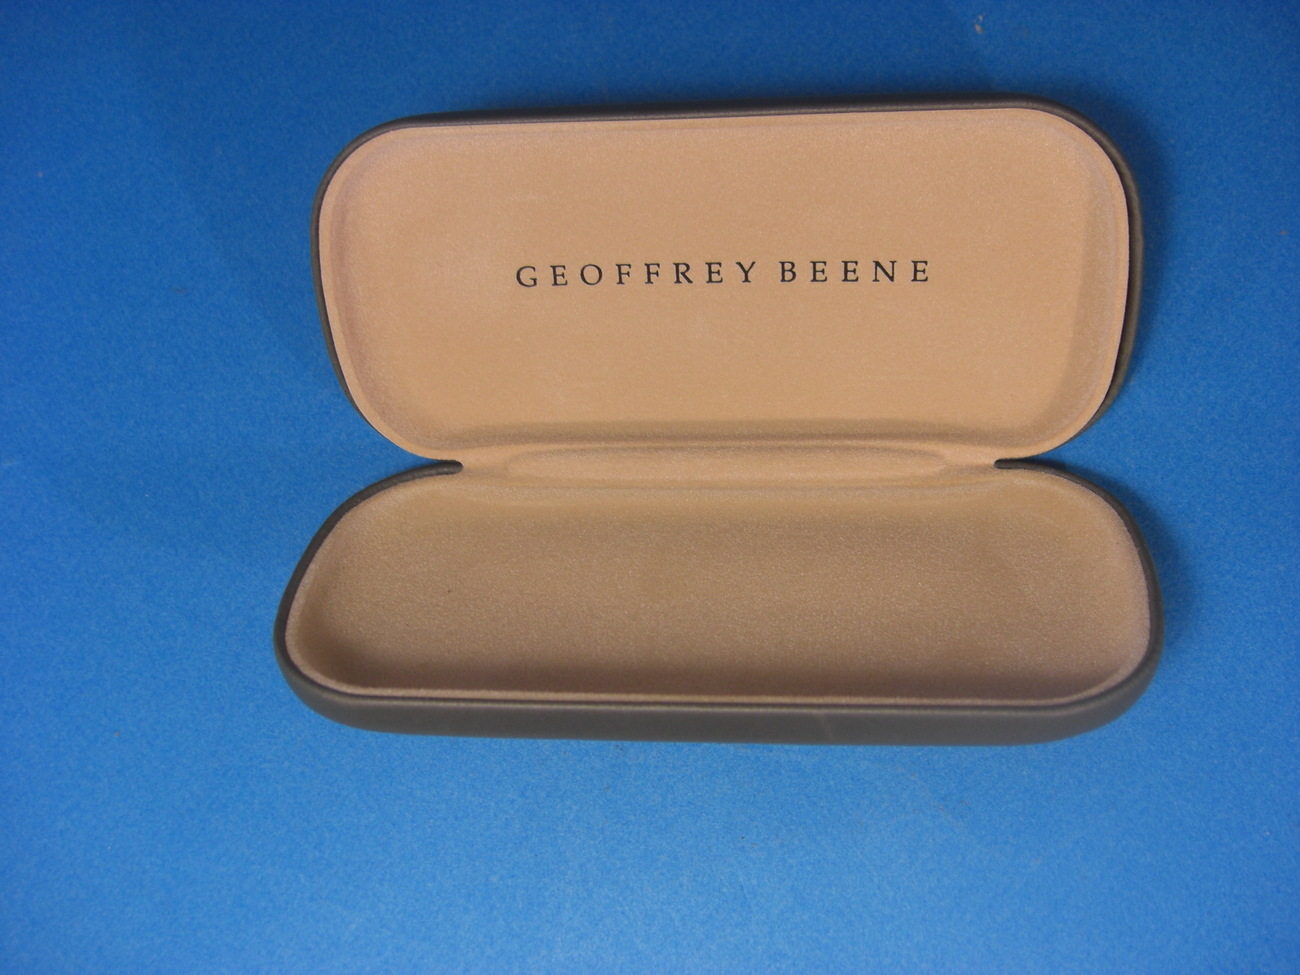 Geoffrey Beene Sunglasses Gray Clam Shell Hard Case